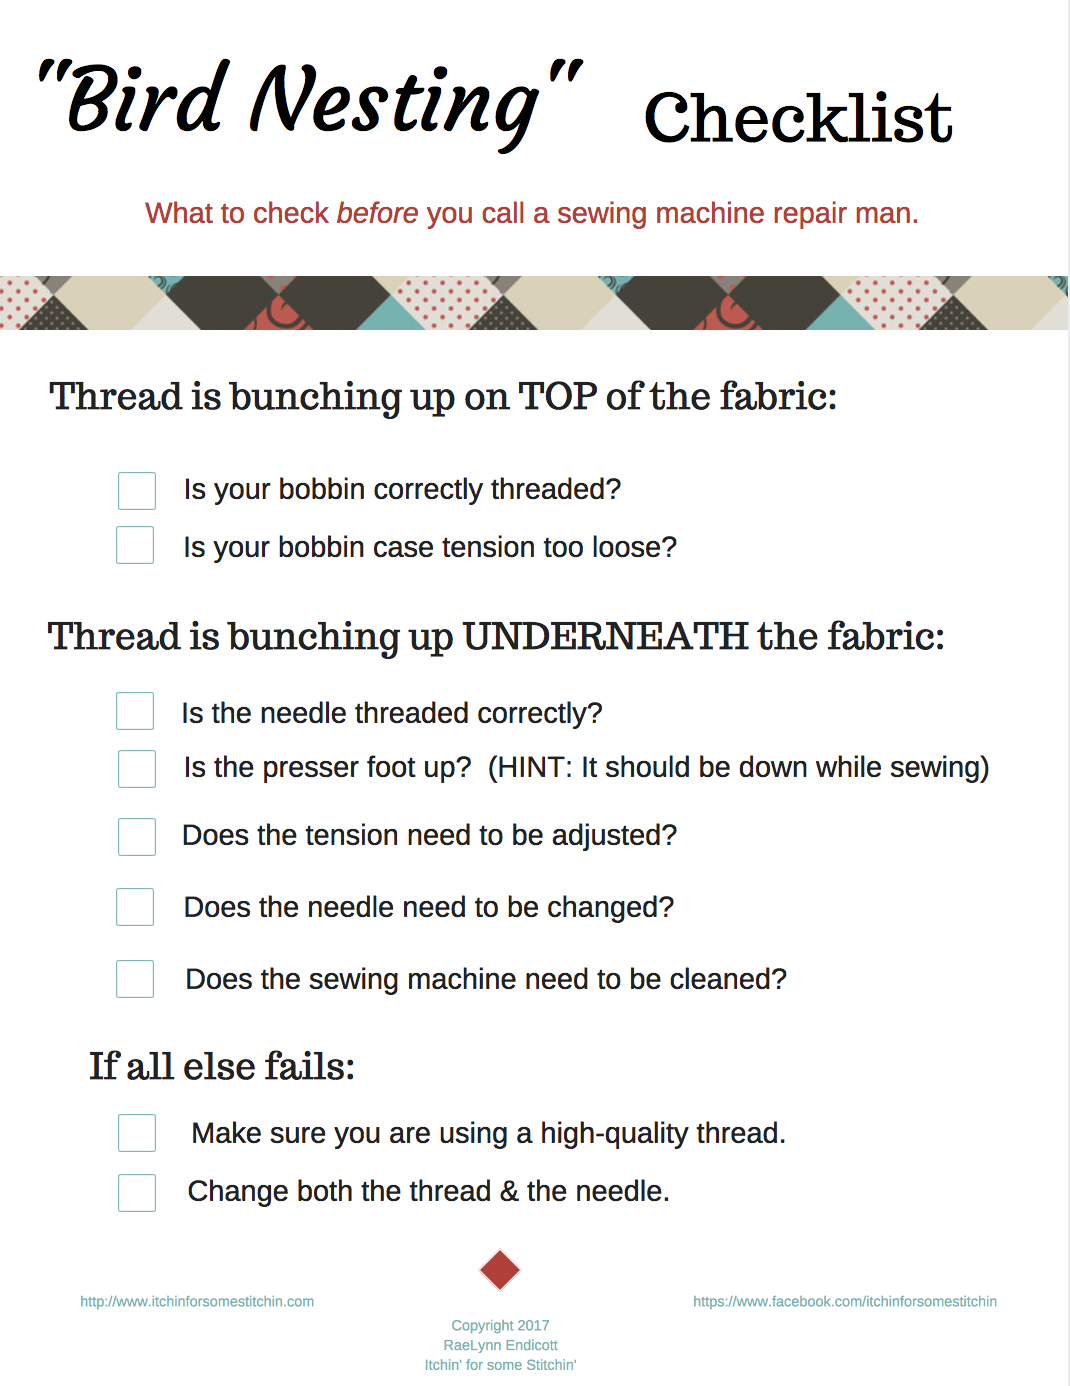 How To Fix Sewing Machine Thread Bunching Up Fabric Pinterest This Is The Should Be Threaded Birdnesting Checklist On Top Of Your Whenever Read It